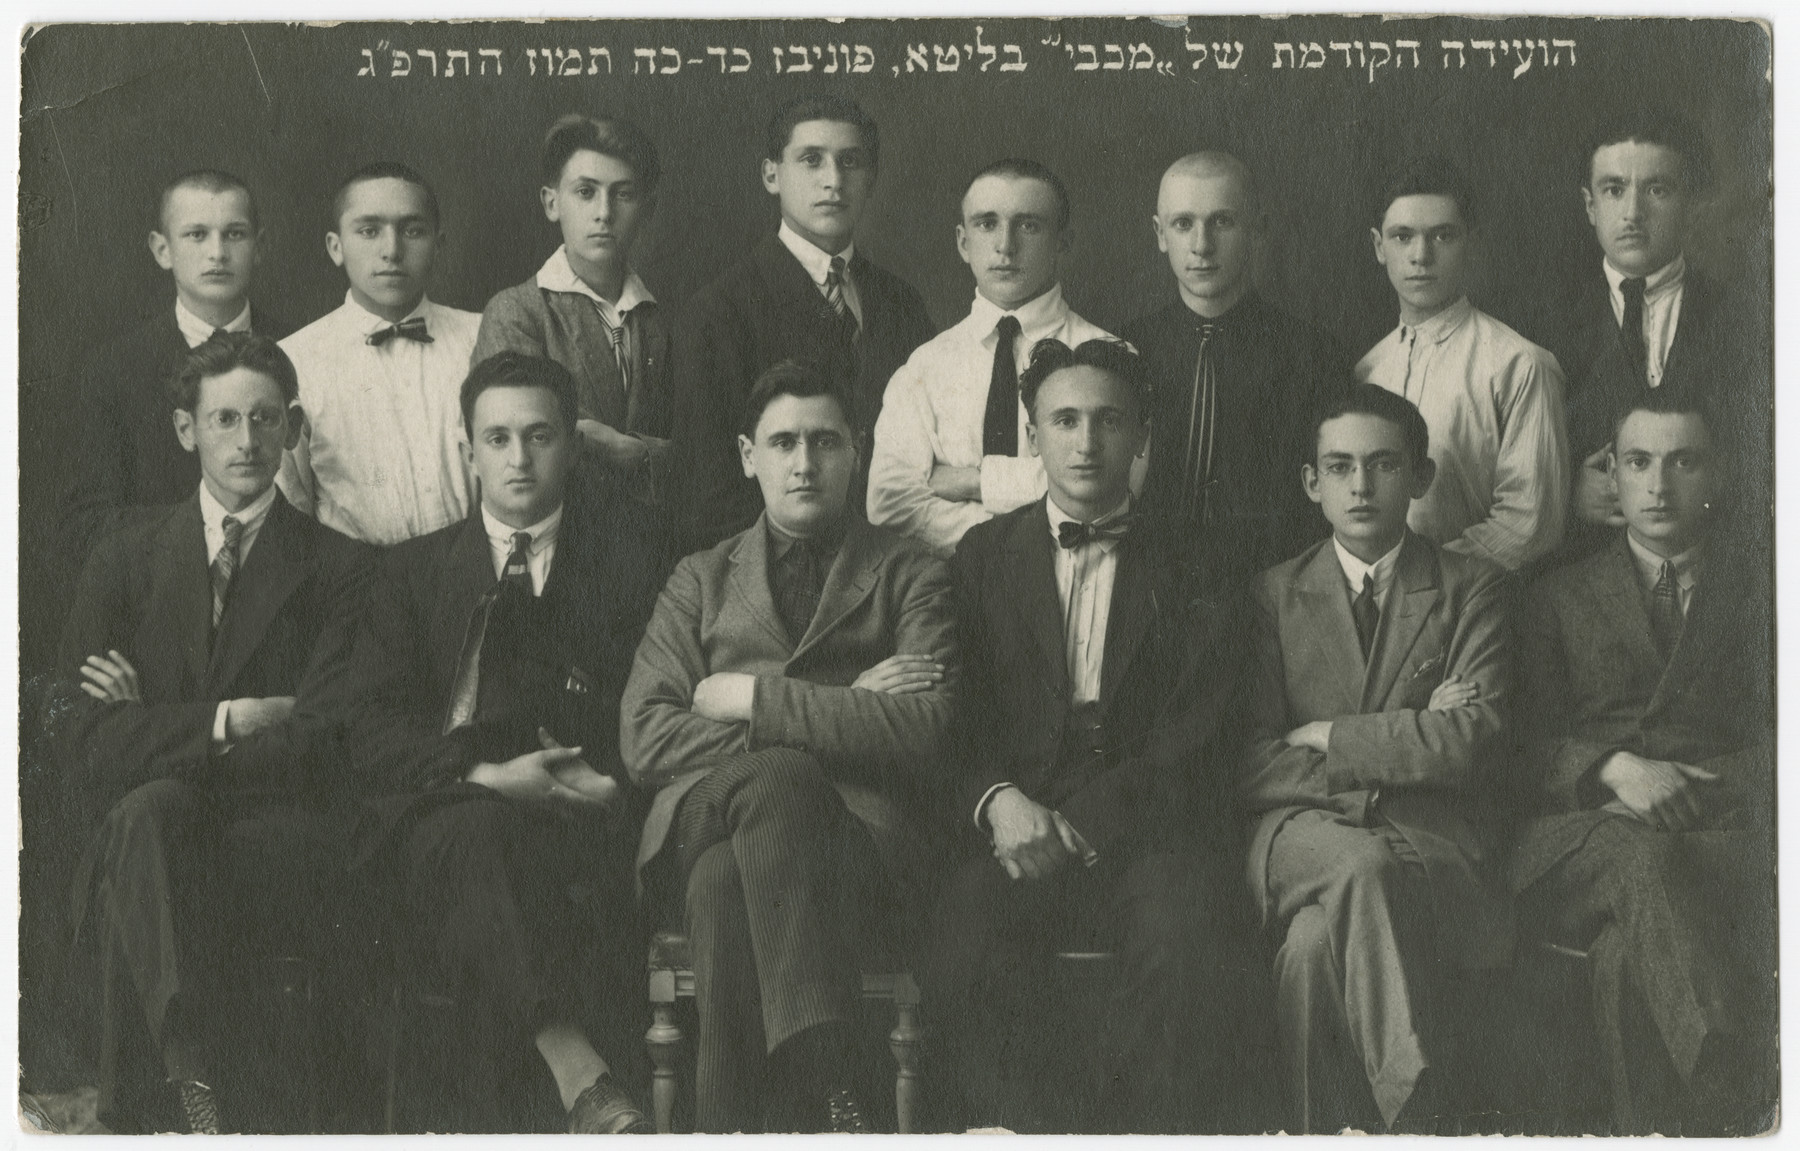 Group portrait of the members of Maccabi (a Zionist sports club) in Panevezys.  Samuel Gotz is in the front row, thirs from the left.